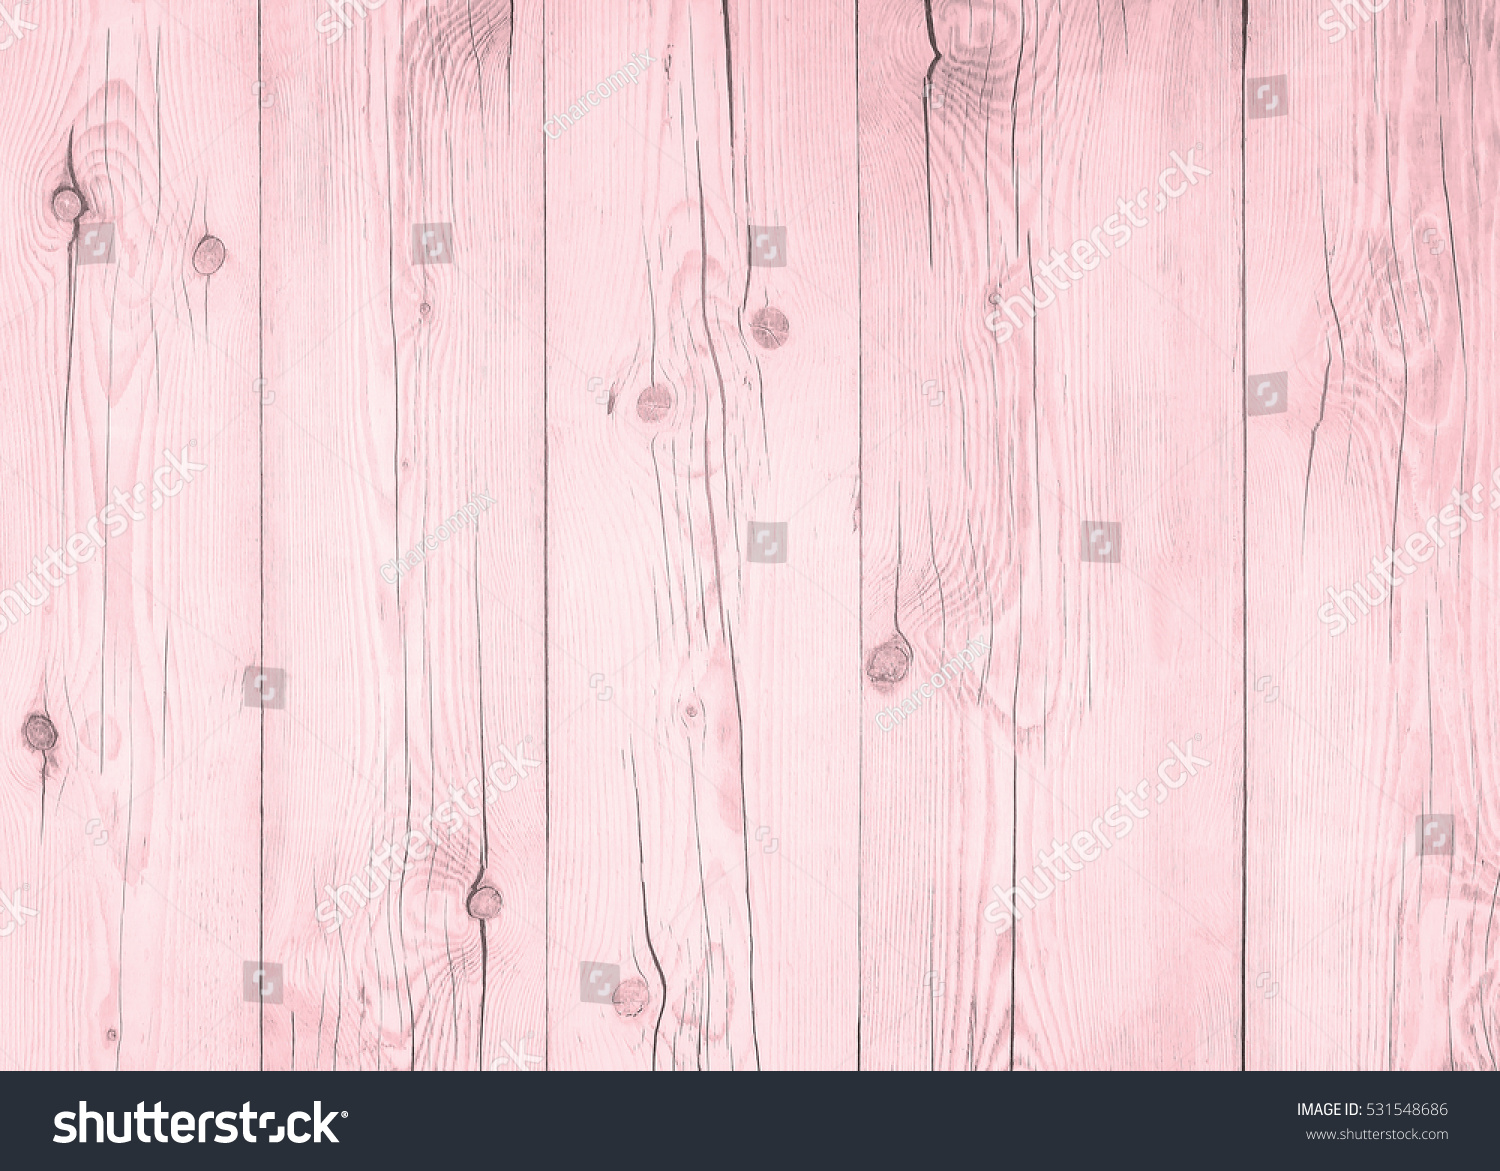 white wood floor texture. Wood floor texture pattern plank surface painted white and pink pastel wall  background Floor Texture Pattern Plank Surface Stock Photo Royalty Free